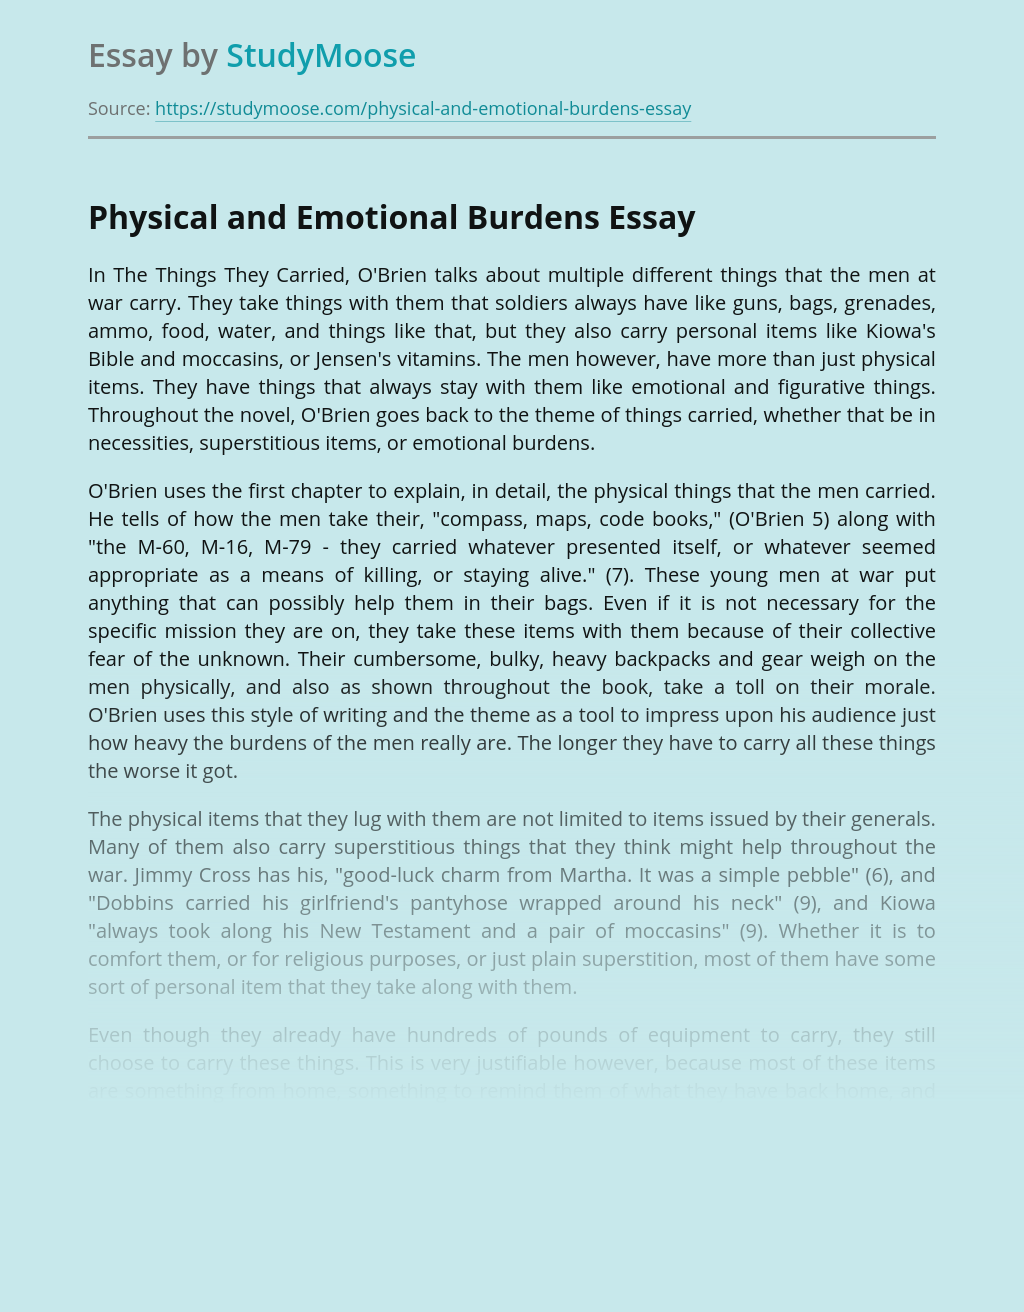 Physical and Emotional Burdens